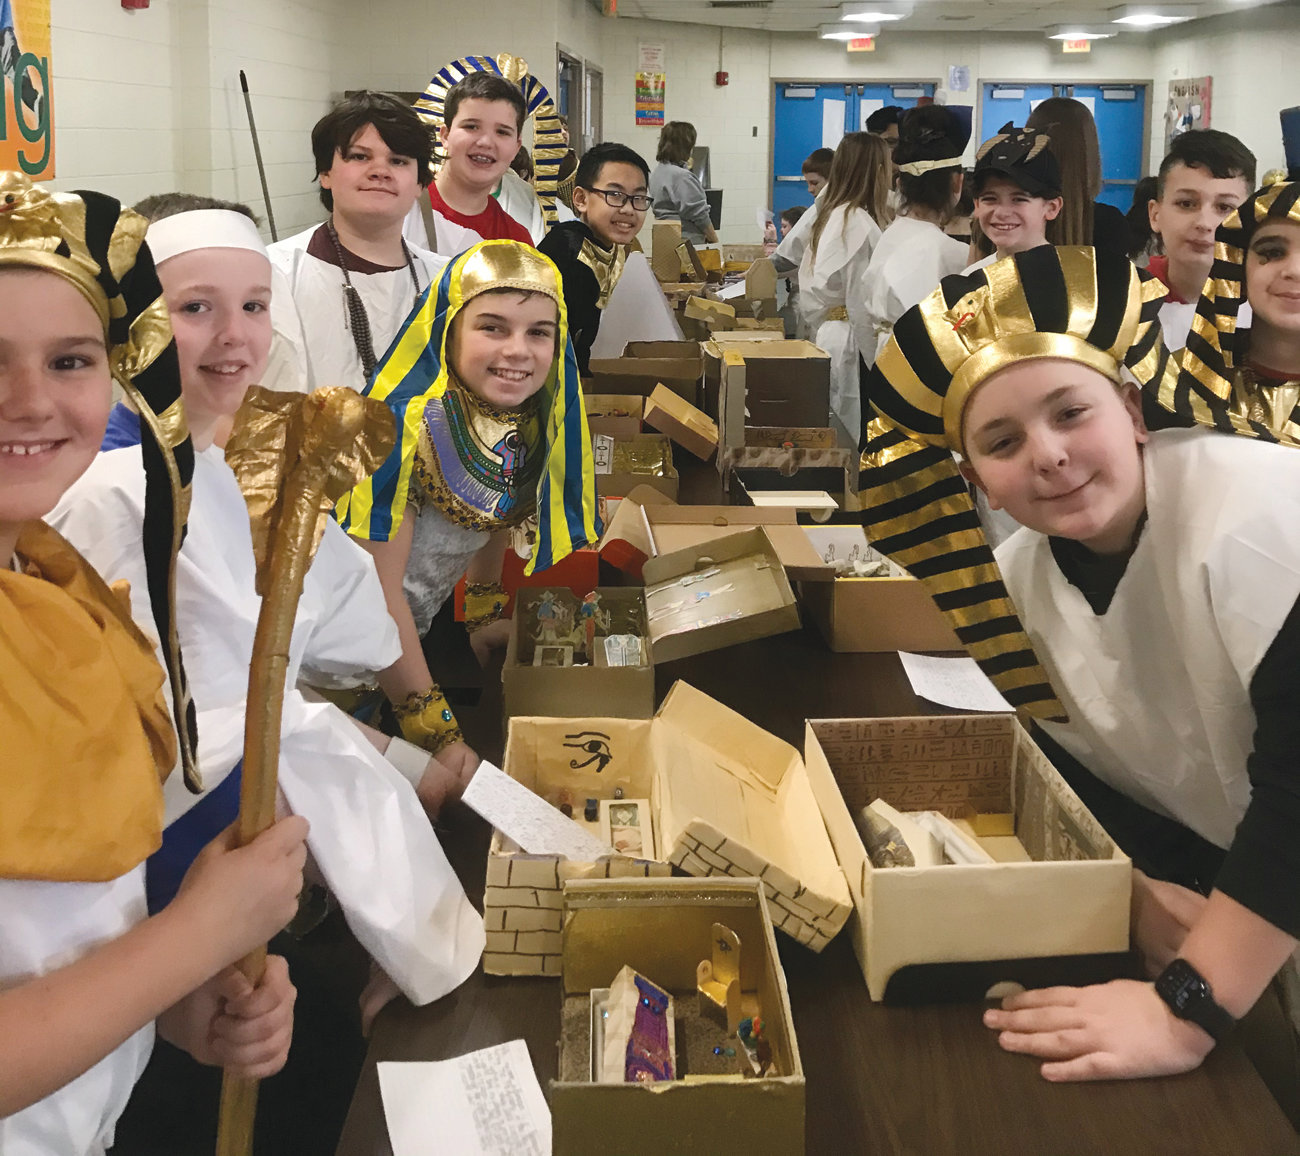 SARCOPHAGUS IN MINIATURE: Winman 6th graders gave a short presentation about their Egyptian identity, daily life, mummification process and burial chamber and an amazing costume taking on the role of their Egyptian person they spent time researching for over 300 parents, family members and guests in attendance on Friday, January 17 in the school cafeteria. Pictured from left (front to back) are Elijah Coons, Jackson Kavanagh, Tiernan Leahy, Benjamin Ashworth, Jacob Arthurs and Michael Xiong; (right row front to back) Benjamin Berry, Andrew Bacon, Tyler McCoombs and Liam Ebbitt.